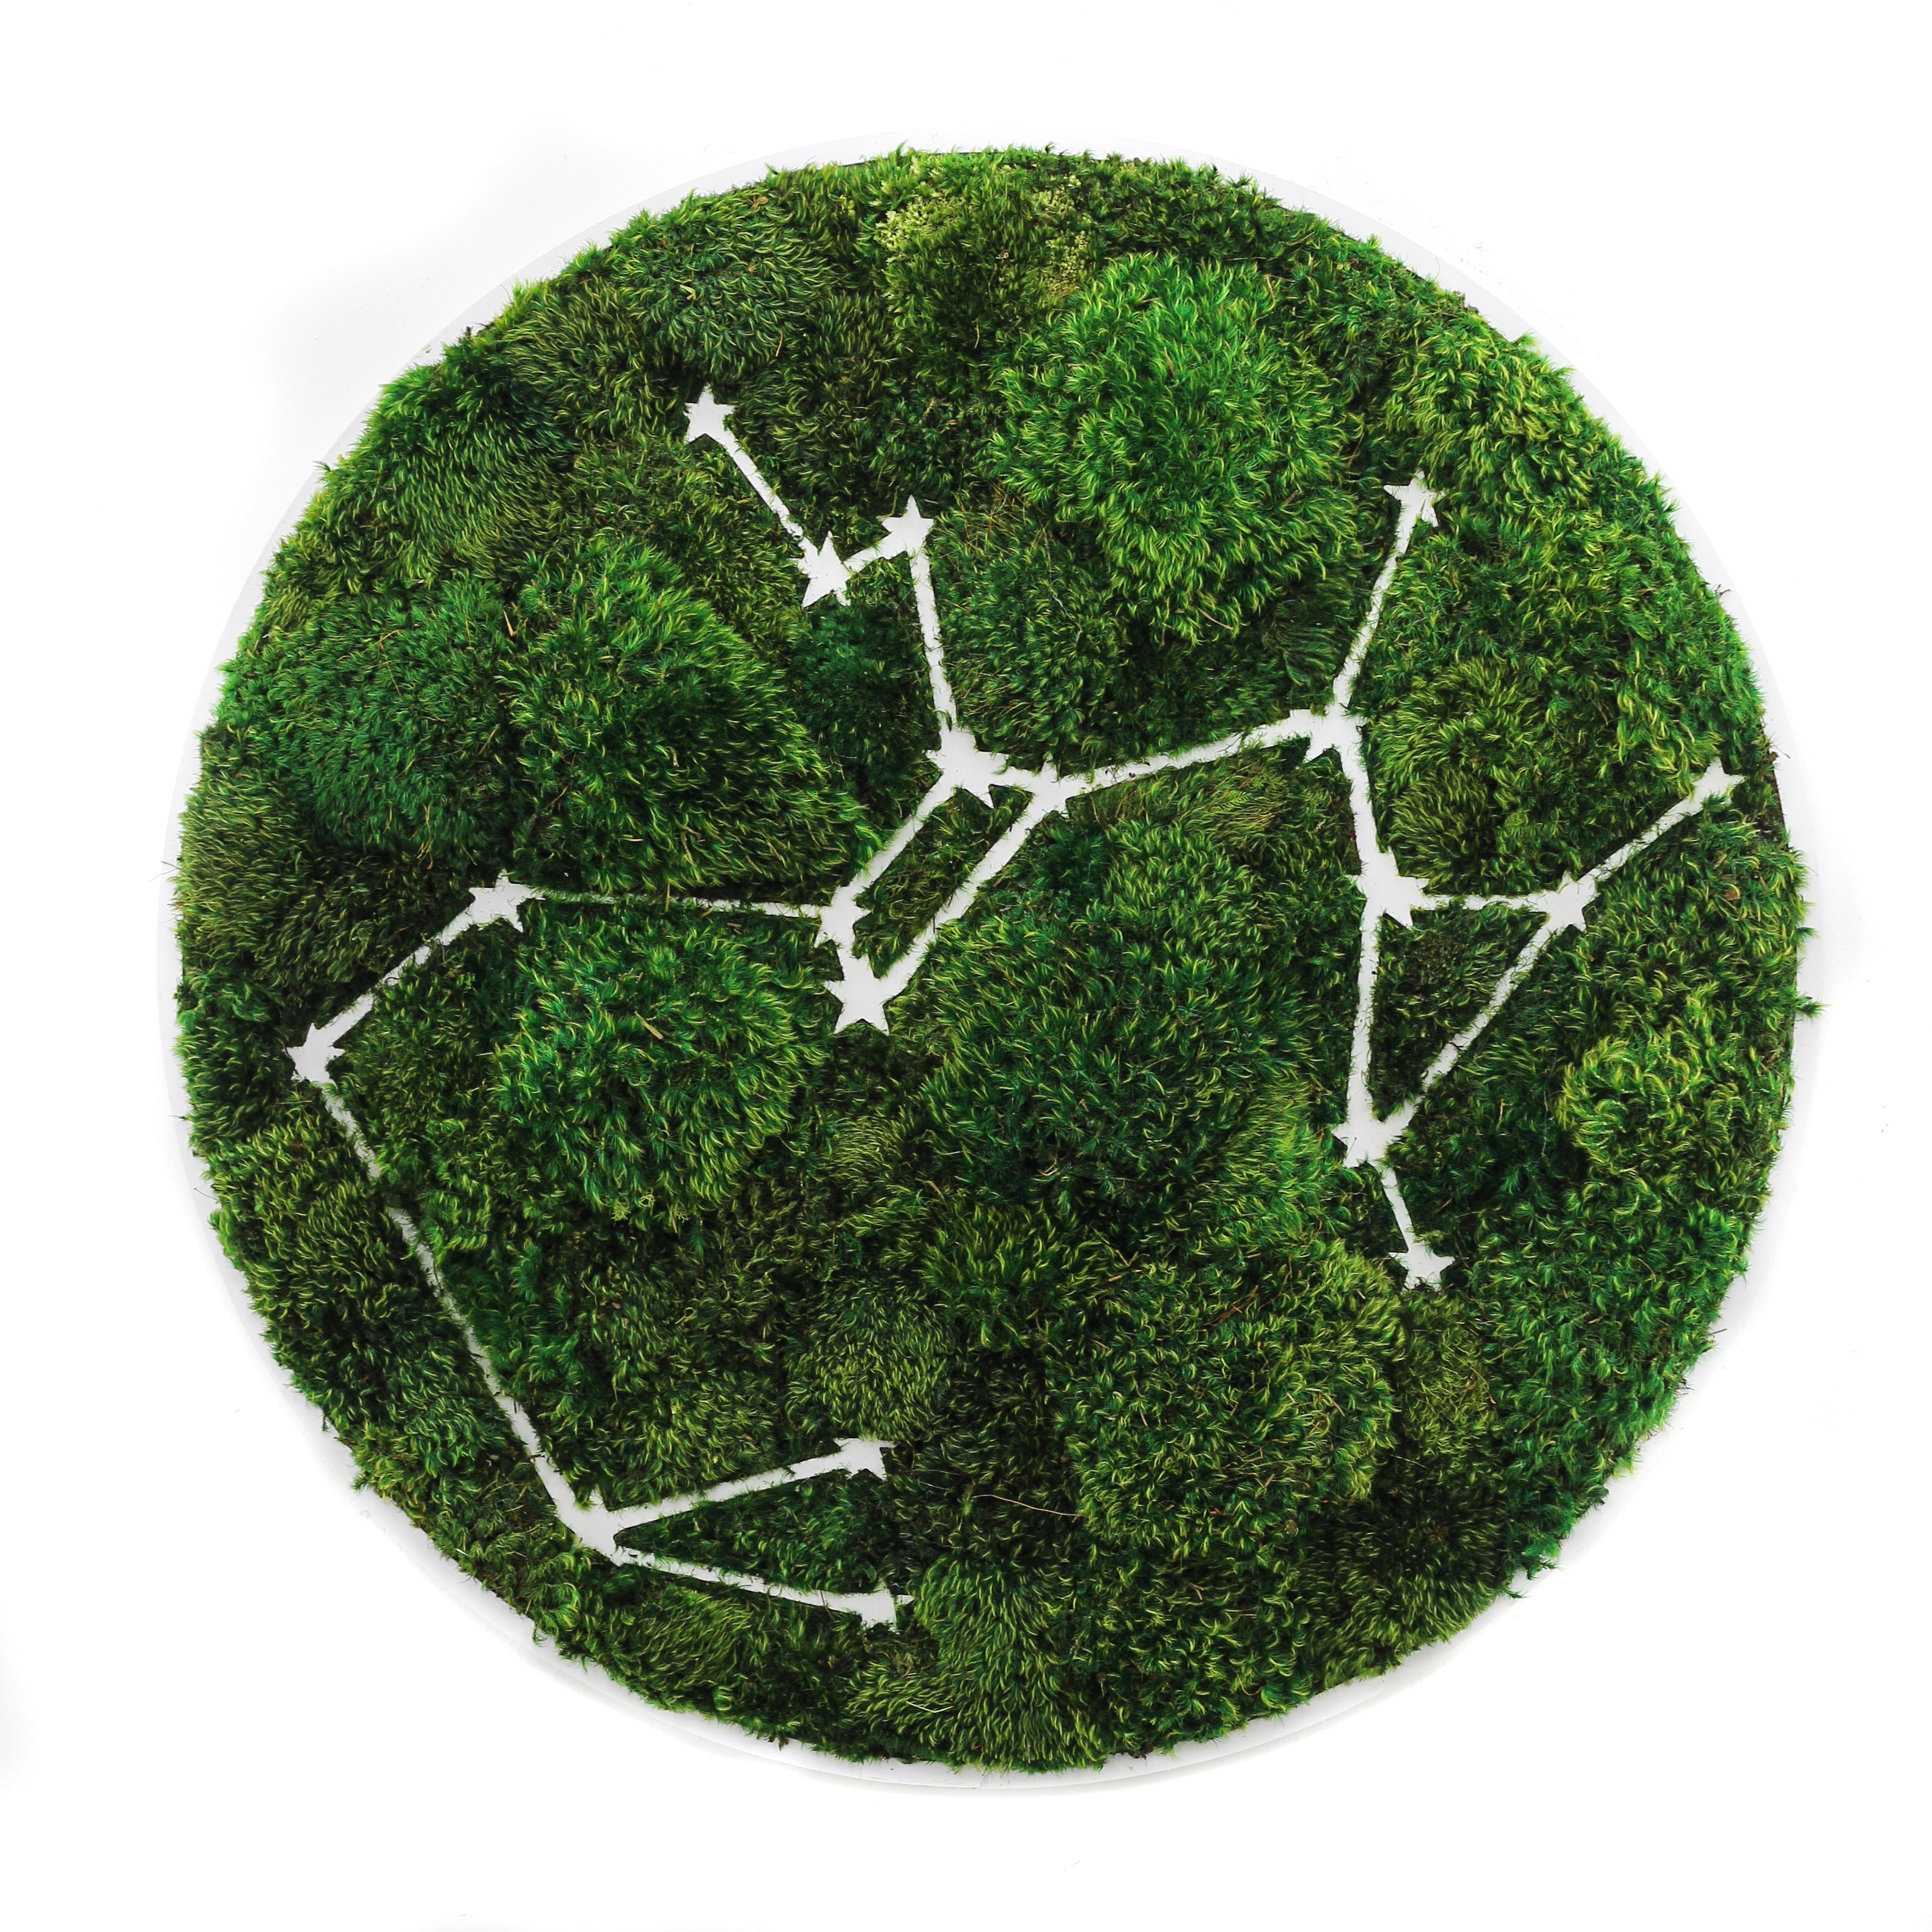 "Sagittarius Constellation - Moss Wall Art (30"" Diameter)"